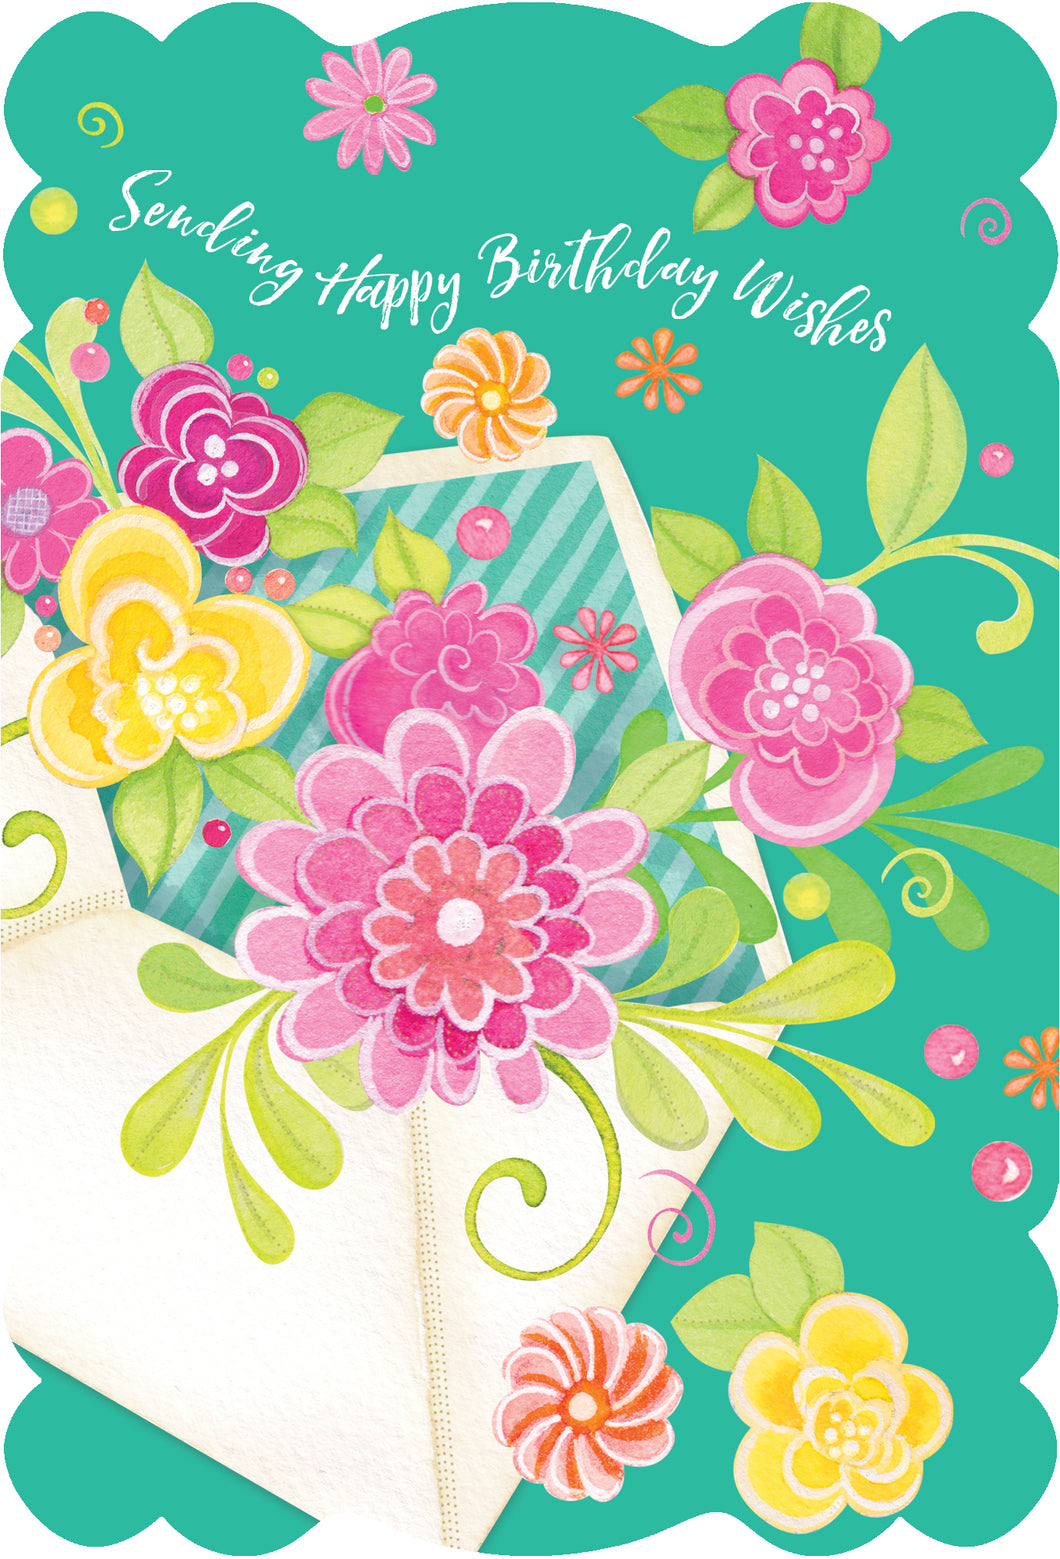 Birthday Card Sending Happy Birthday Wishes Sienna's Garden